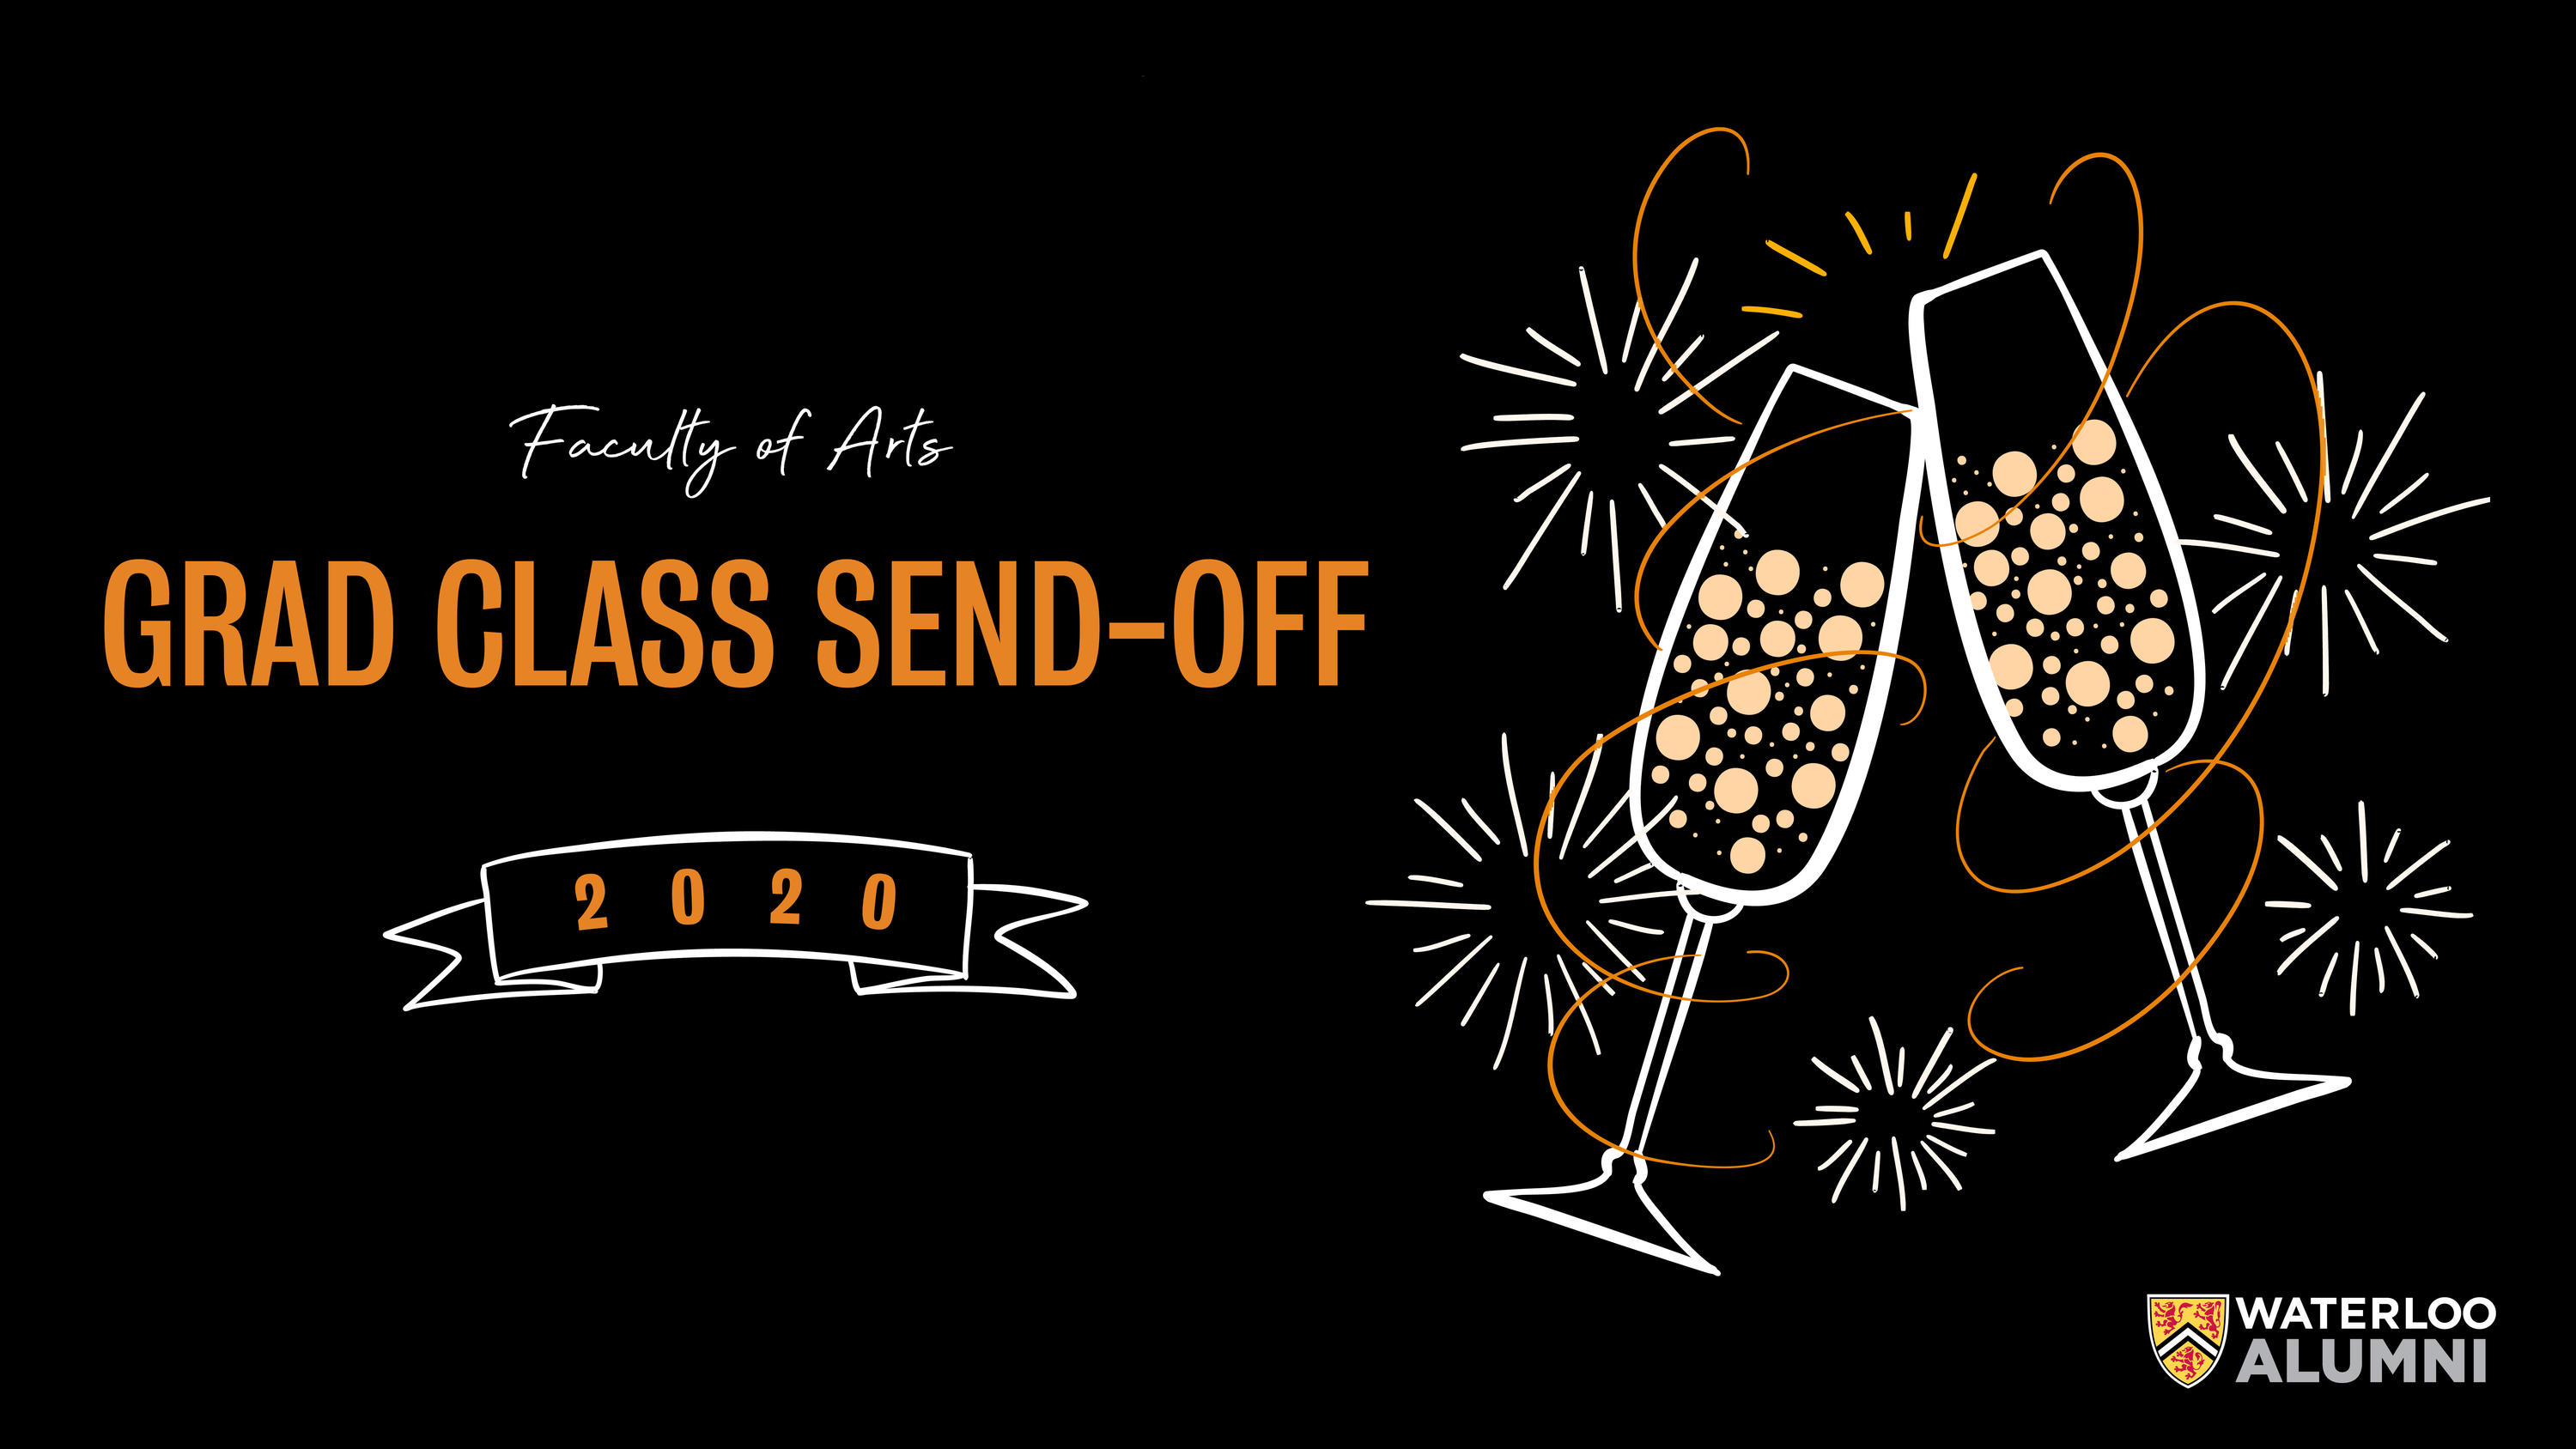 Grad Send off web banner graphic